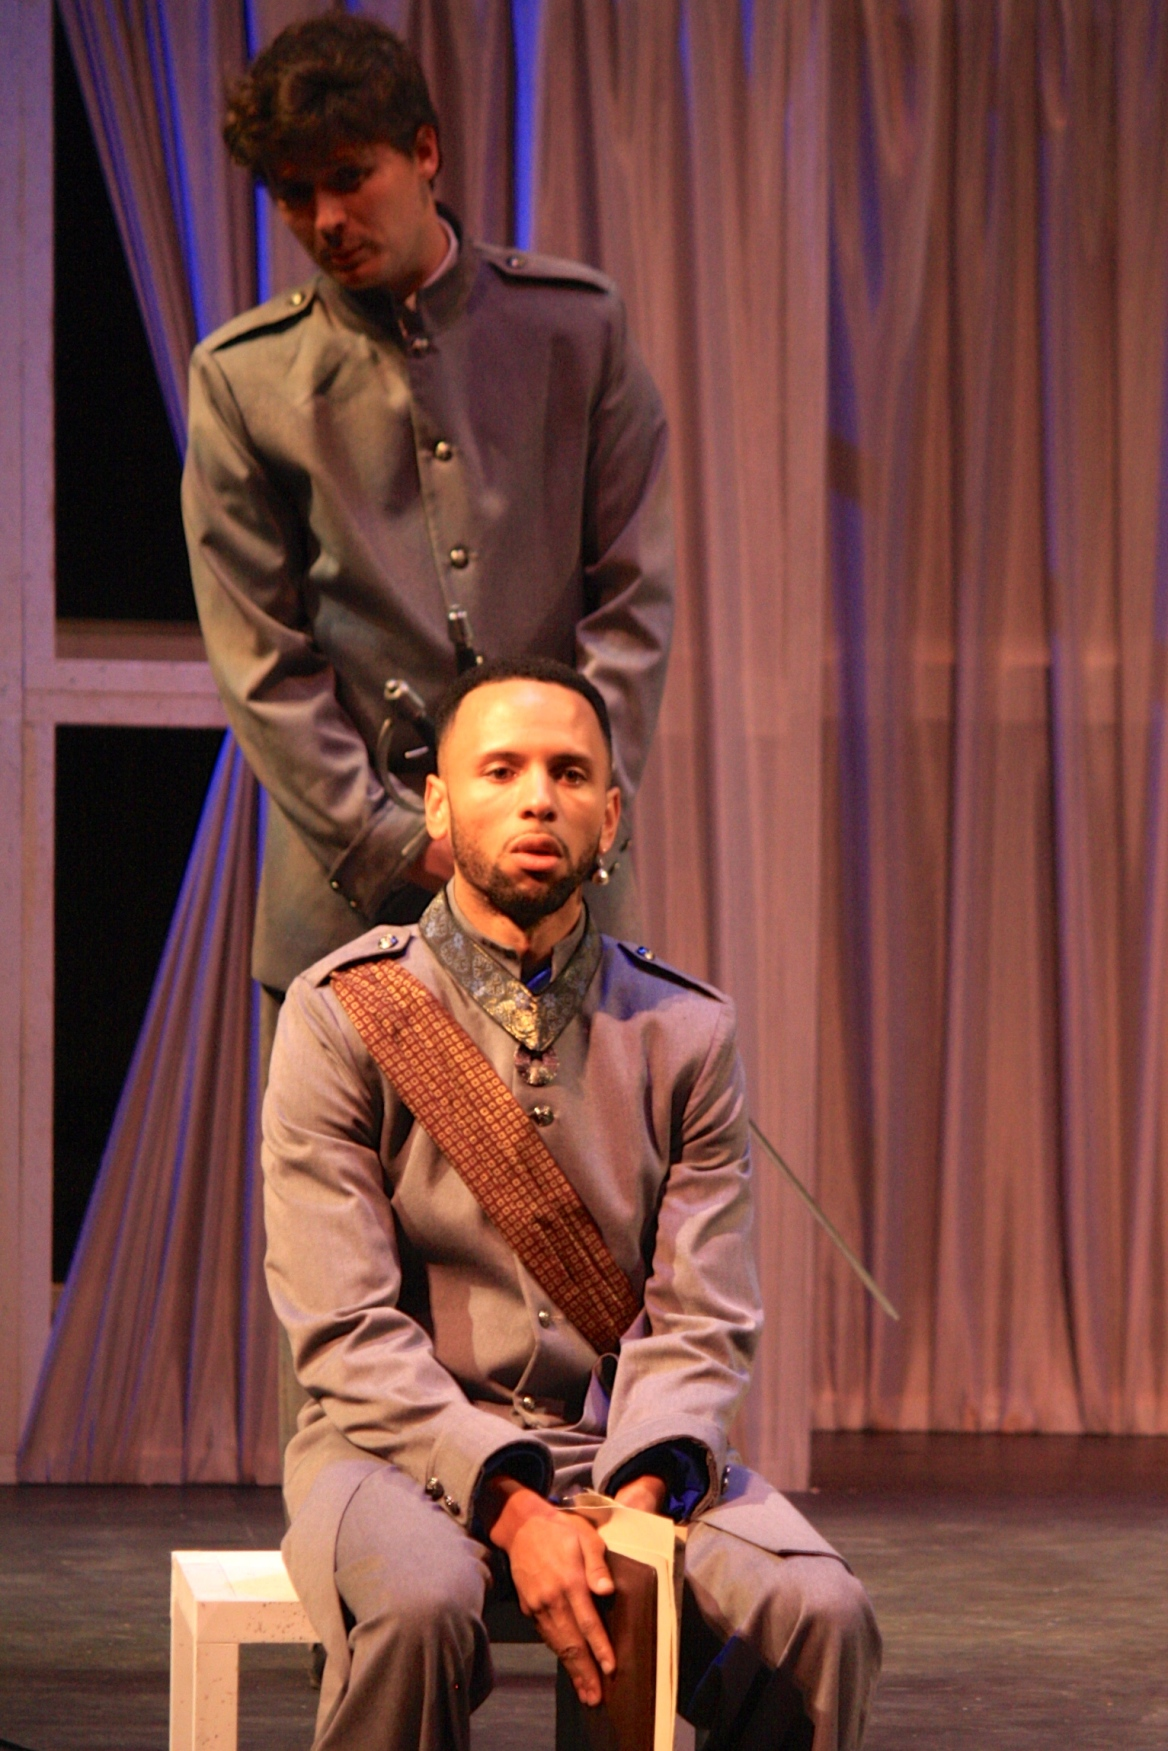 essays othello iago The tragedy of othello: the moor of venice is william shakespeare's play, written around 1604 shakespeare borrowed the plot of the tragedy of othello from the short story the moor of venice of giraldi cintio, published in his book hecatommithi.